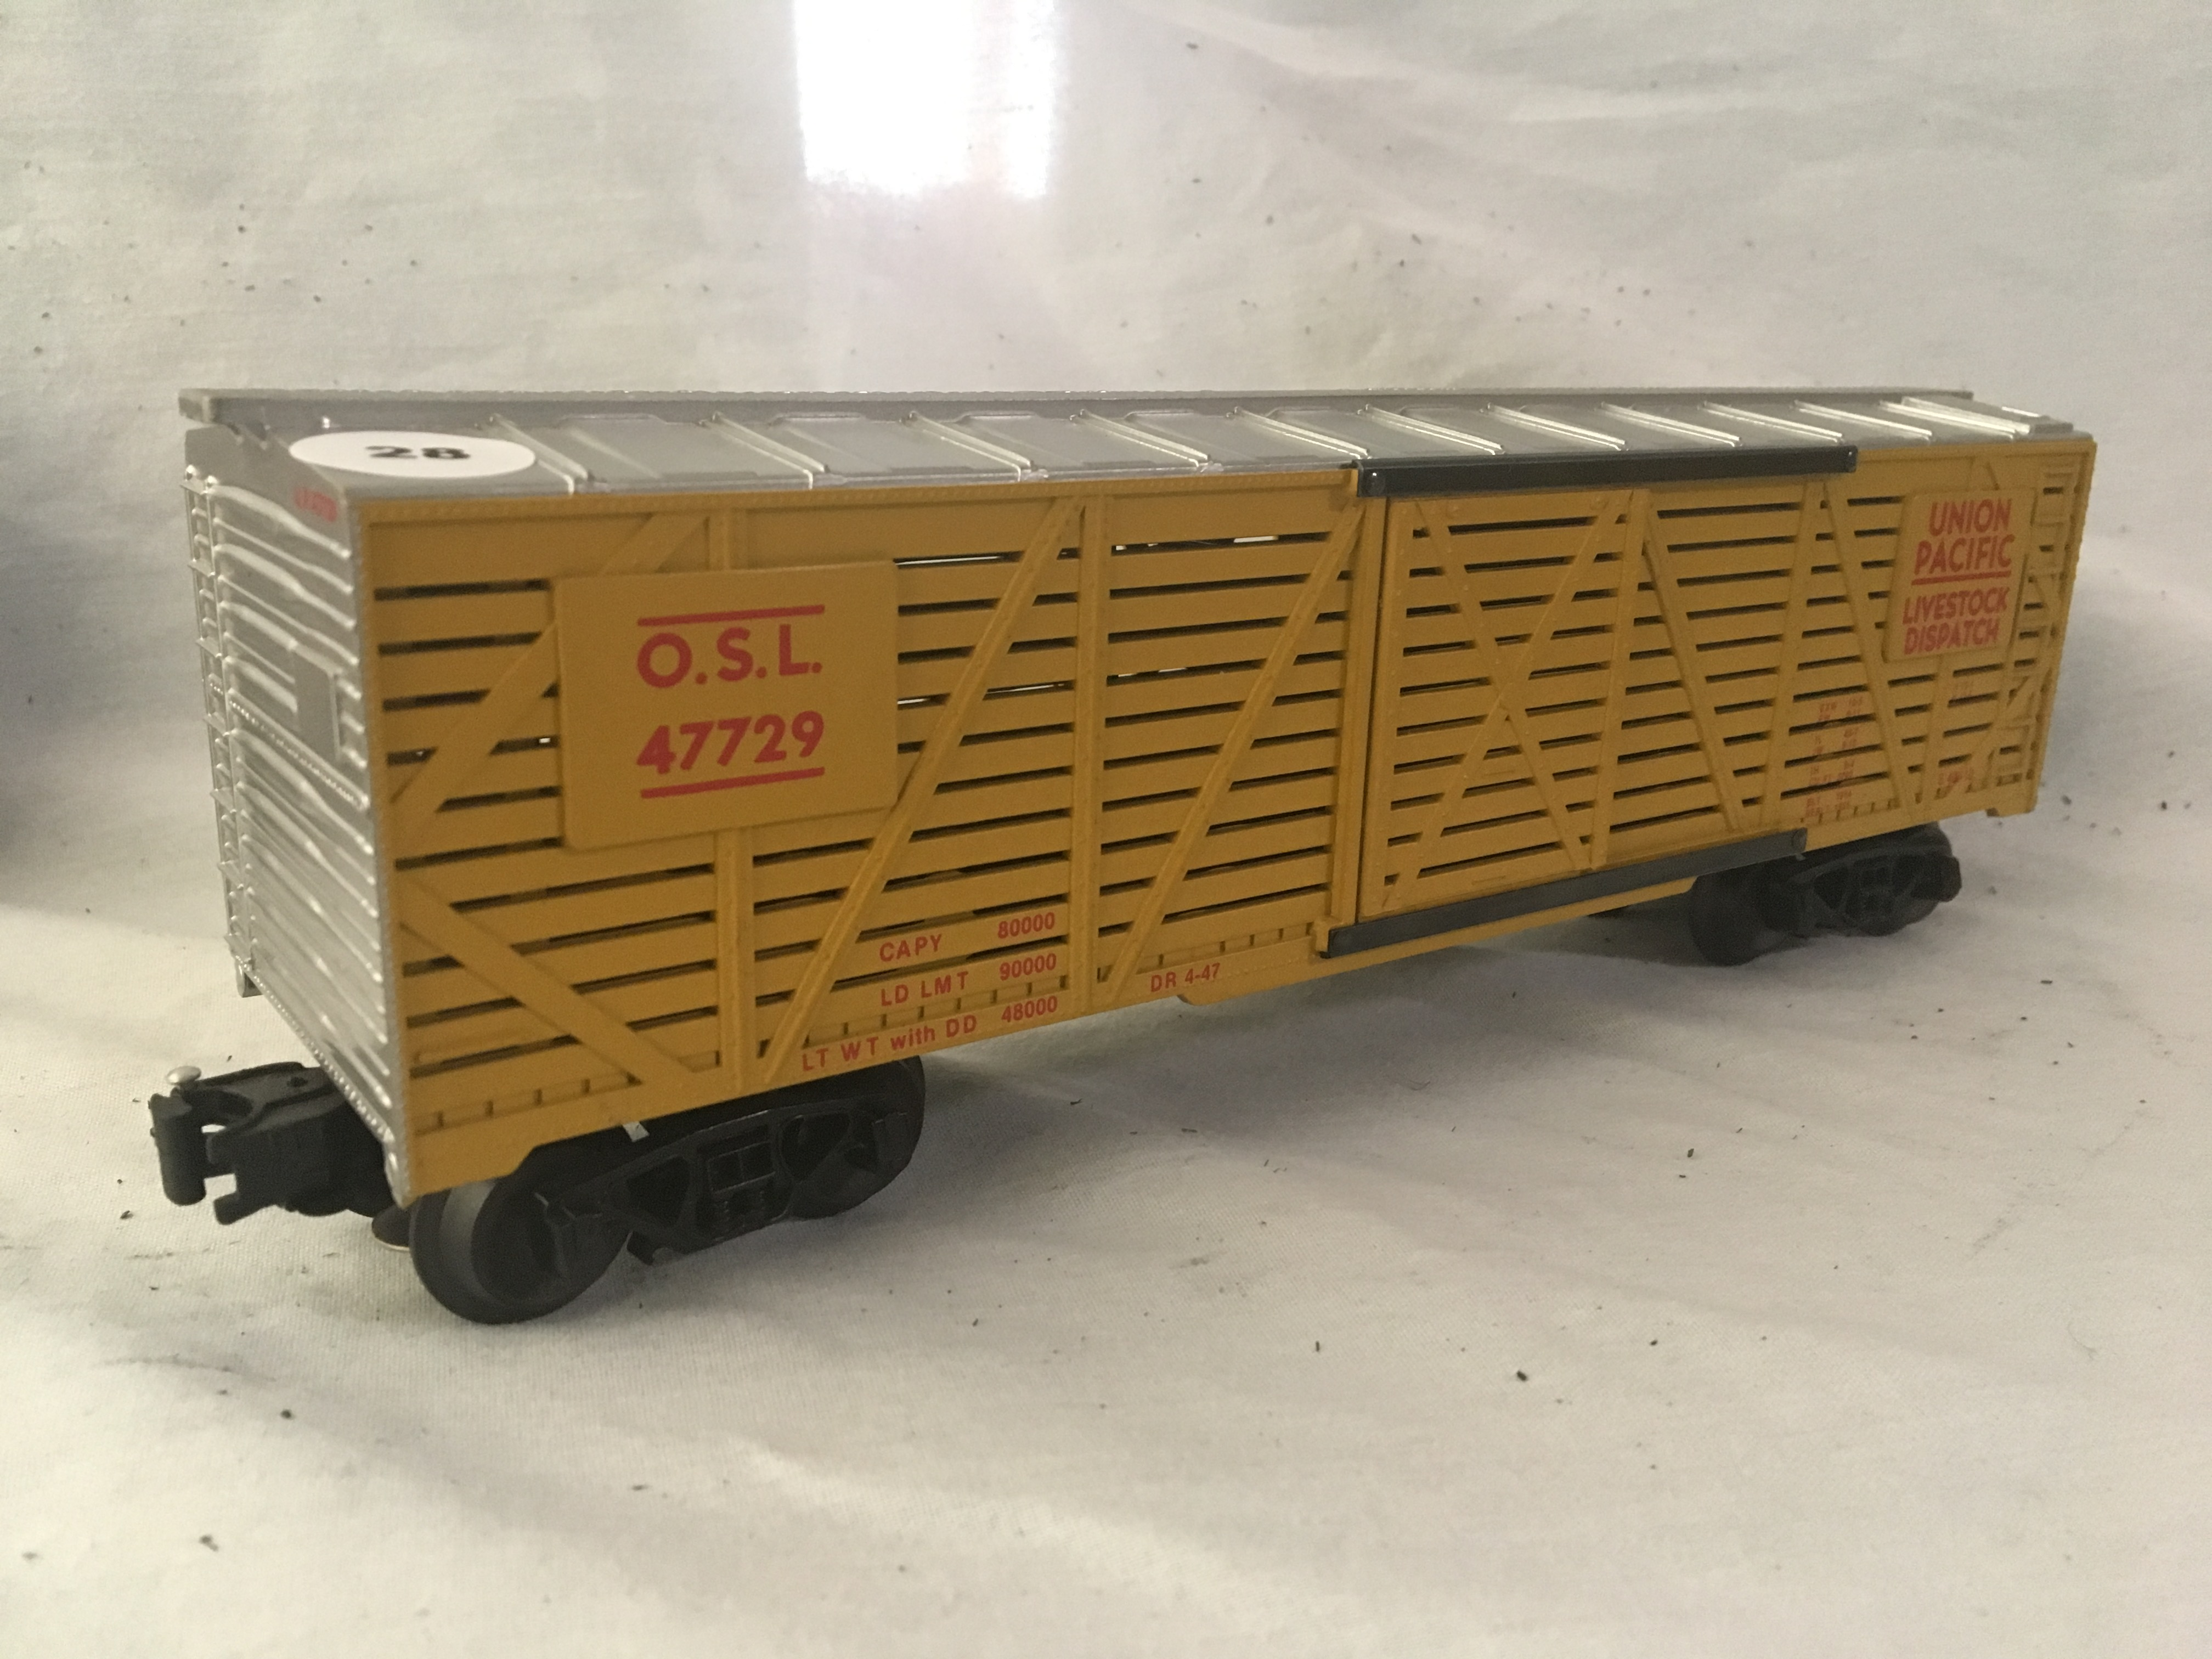 Lot 28 - #47729 O.S.L. Union Pacific Livestock Dispatch with Live Action Sound